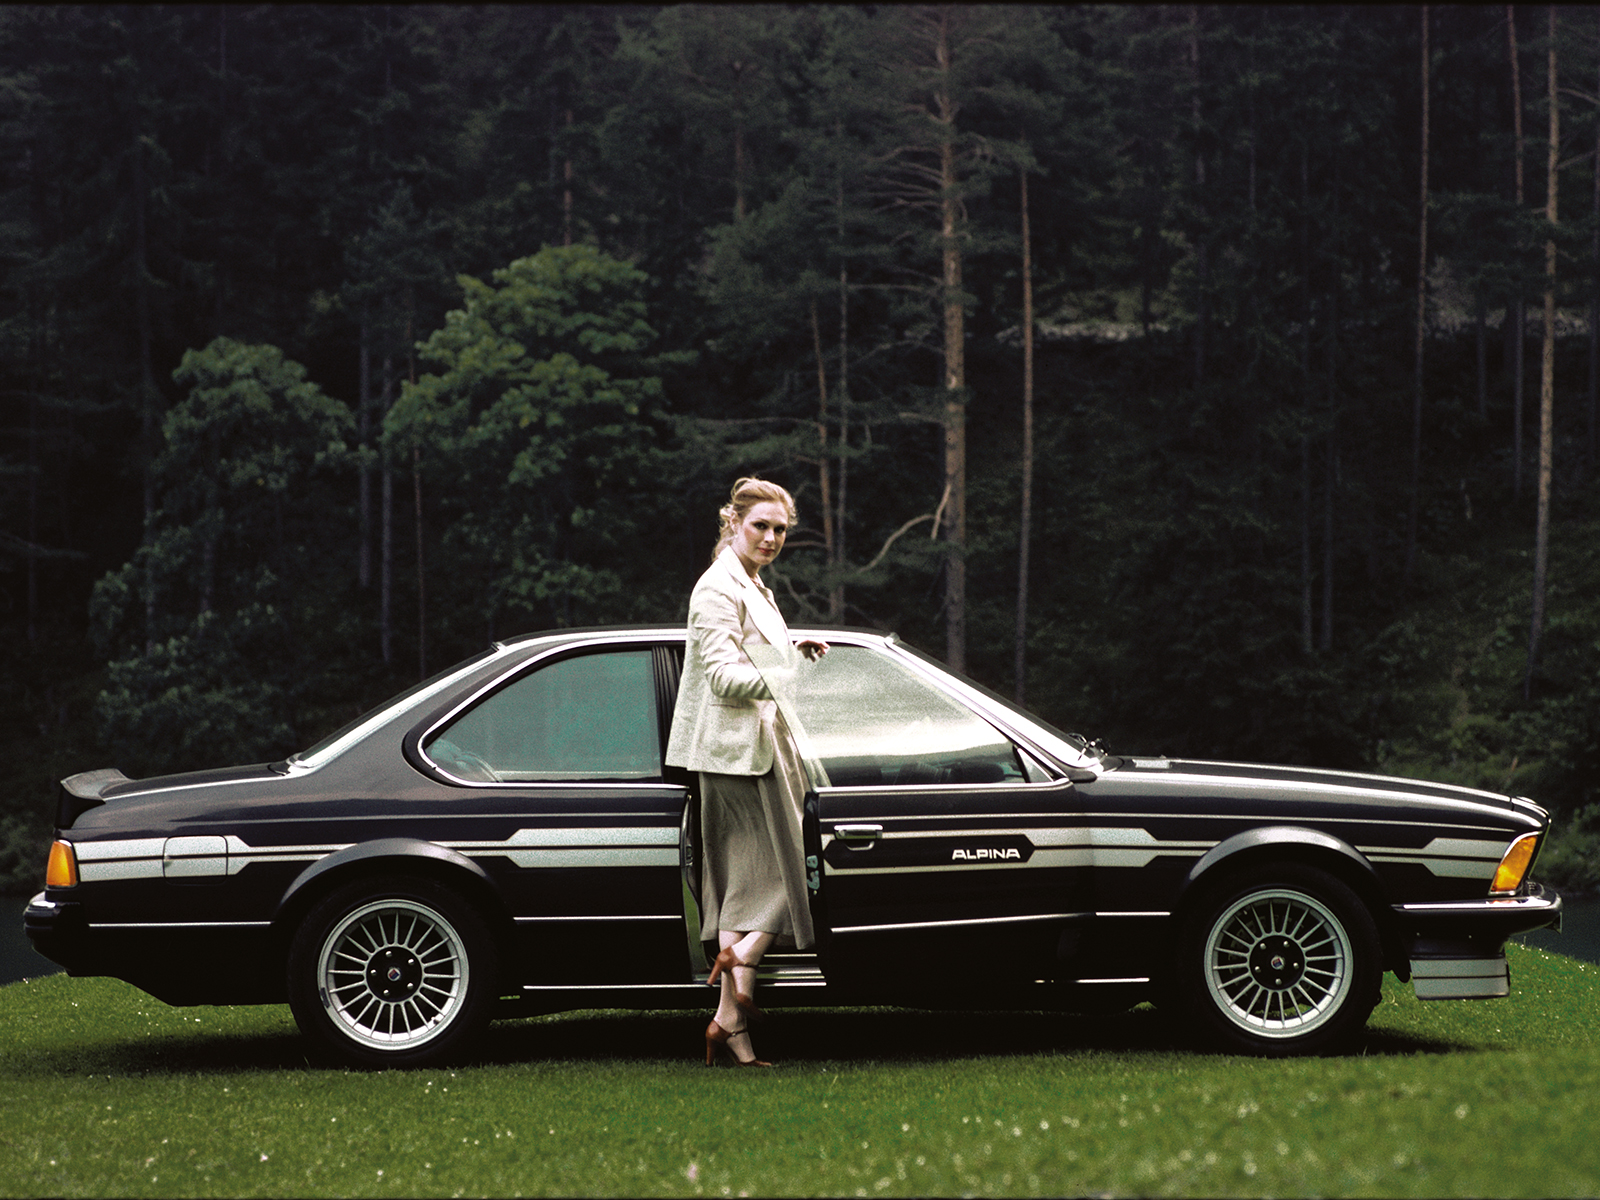 Bmw 6 Series E24 Alpina Automobiles